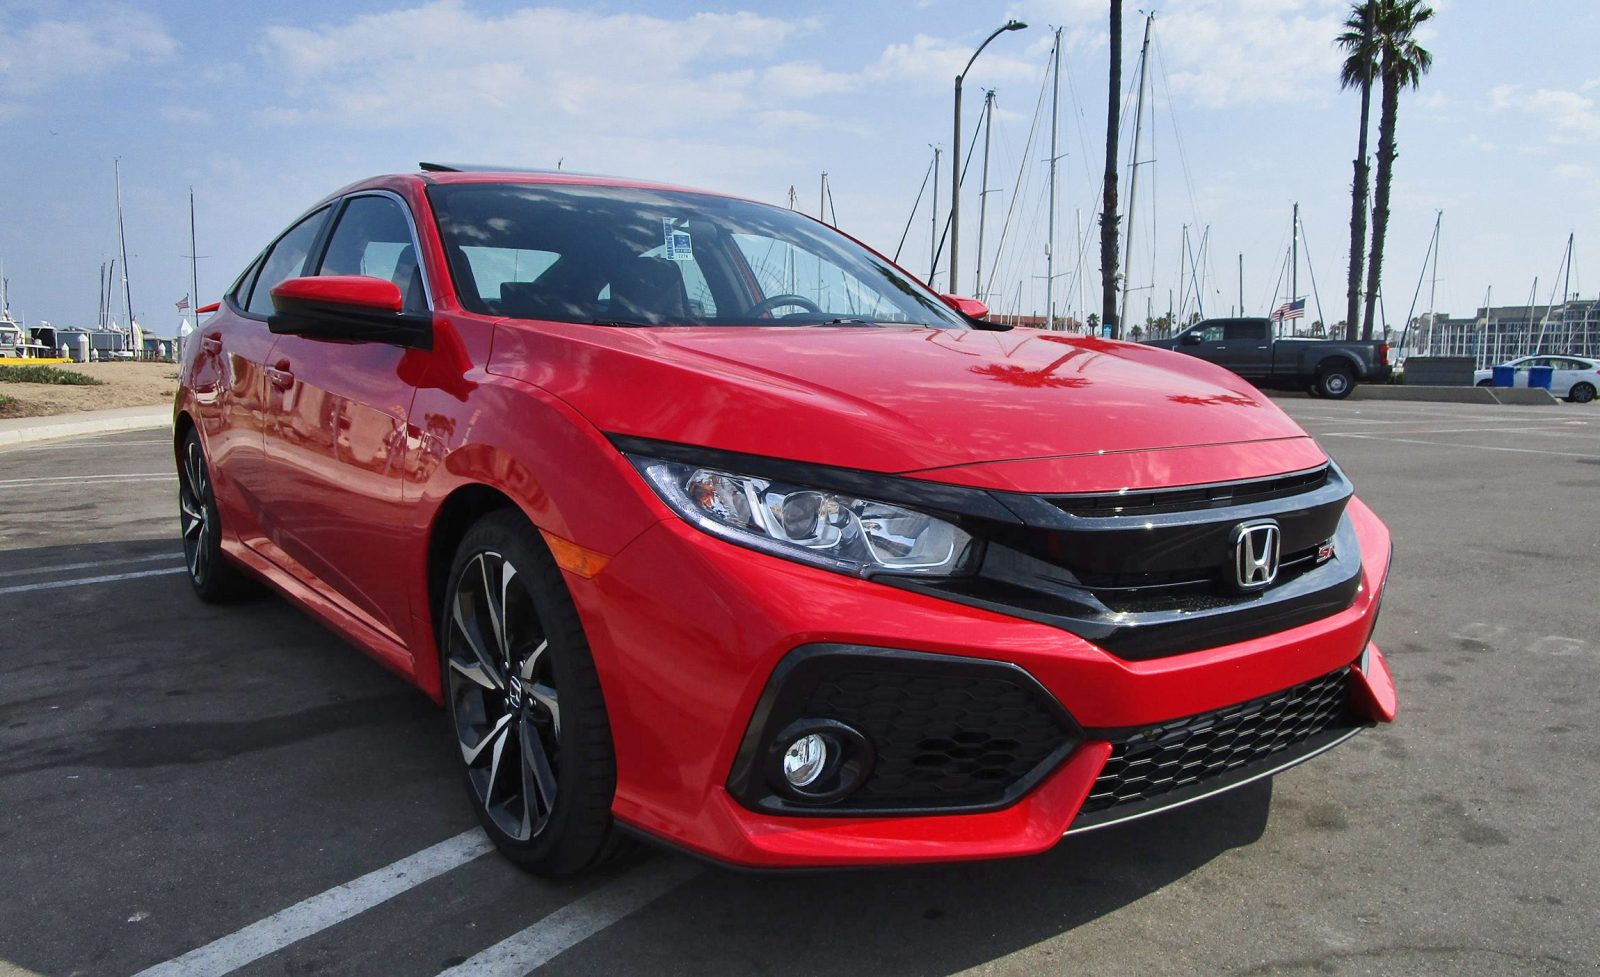 2017 Honda Civic Si Sedan - Road Test Review - By Ben Lewis